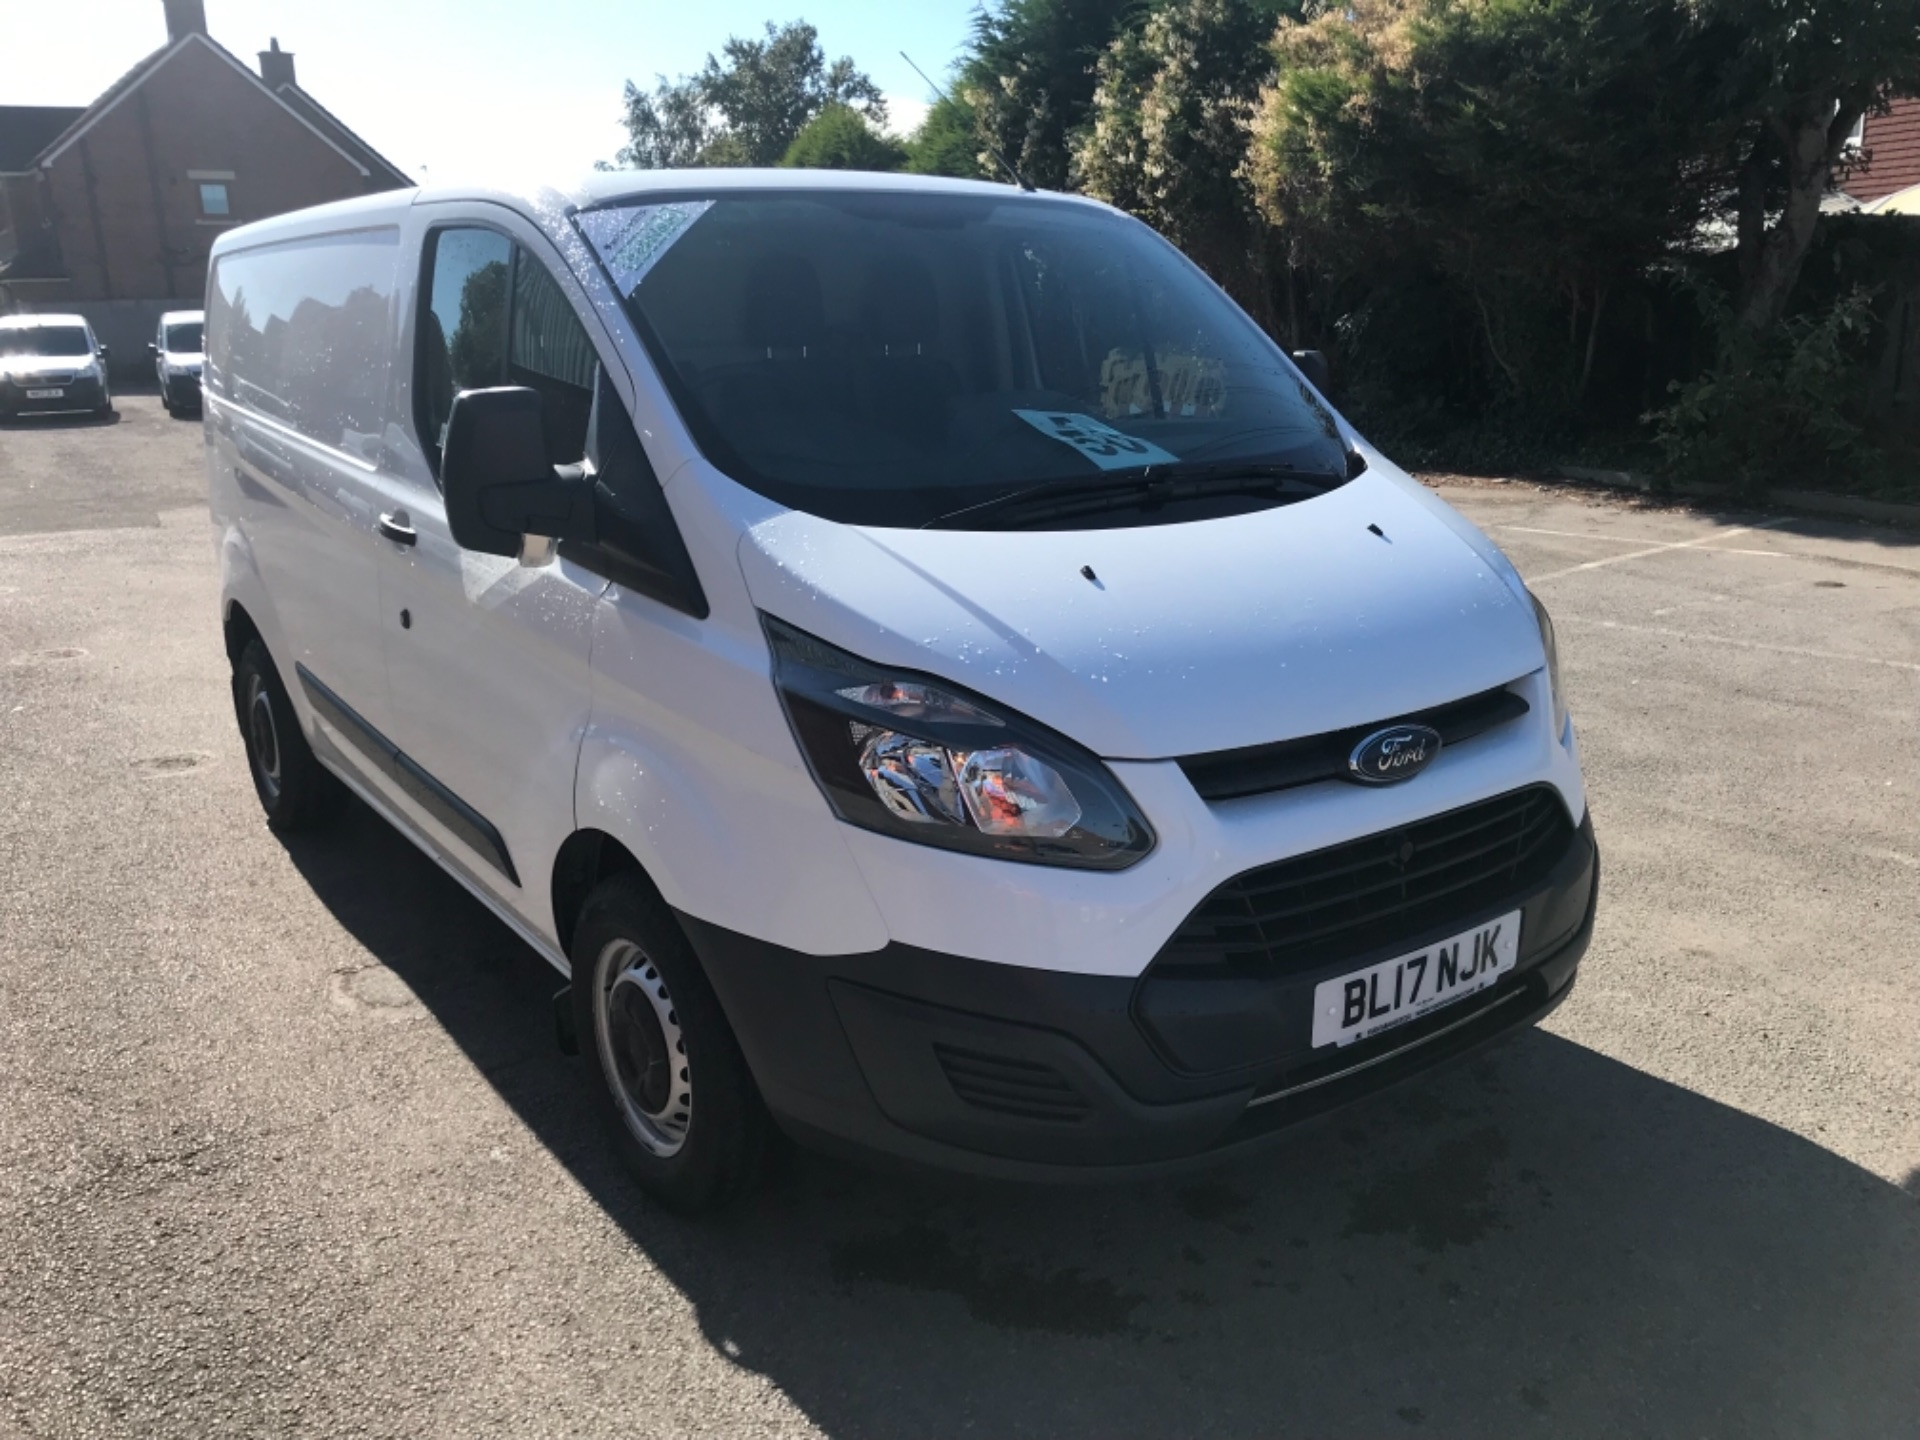 2017 Ford Transit Custom 2.0 Tdci 105Ps Low Roof Van EURO 6 (BL17NJK)